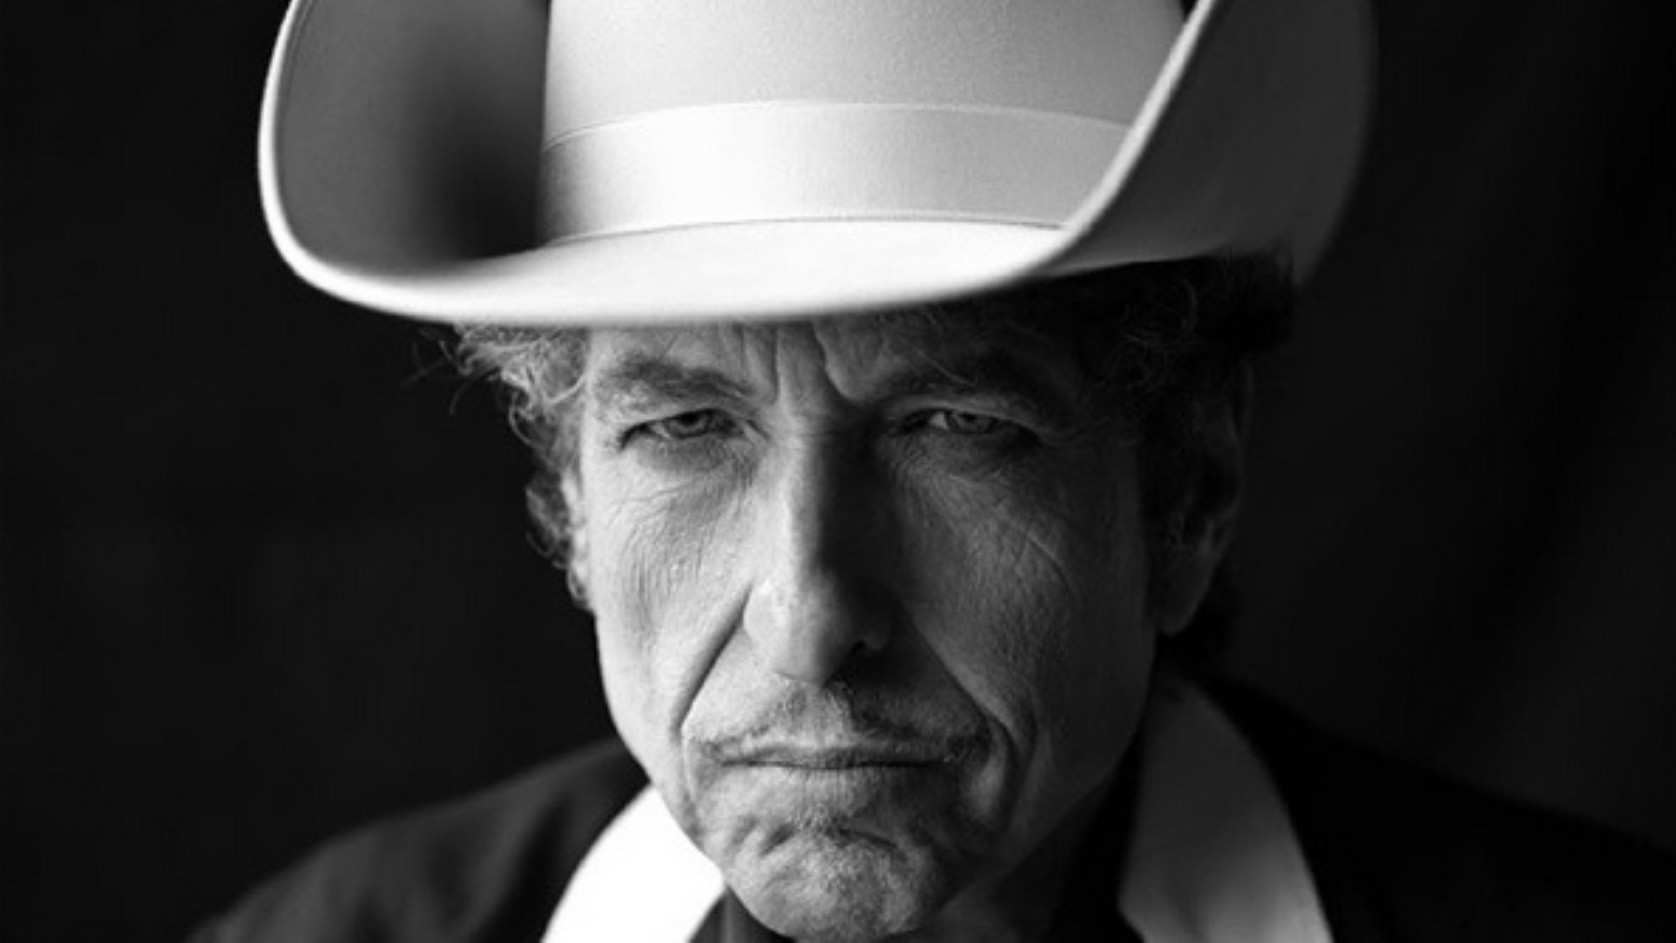 I Took Stunning Photo Of Dylan At >> Listen To Yet Another Stunning Frank Sinatra Cover From Bob Dylan Vice